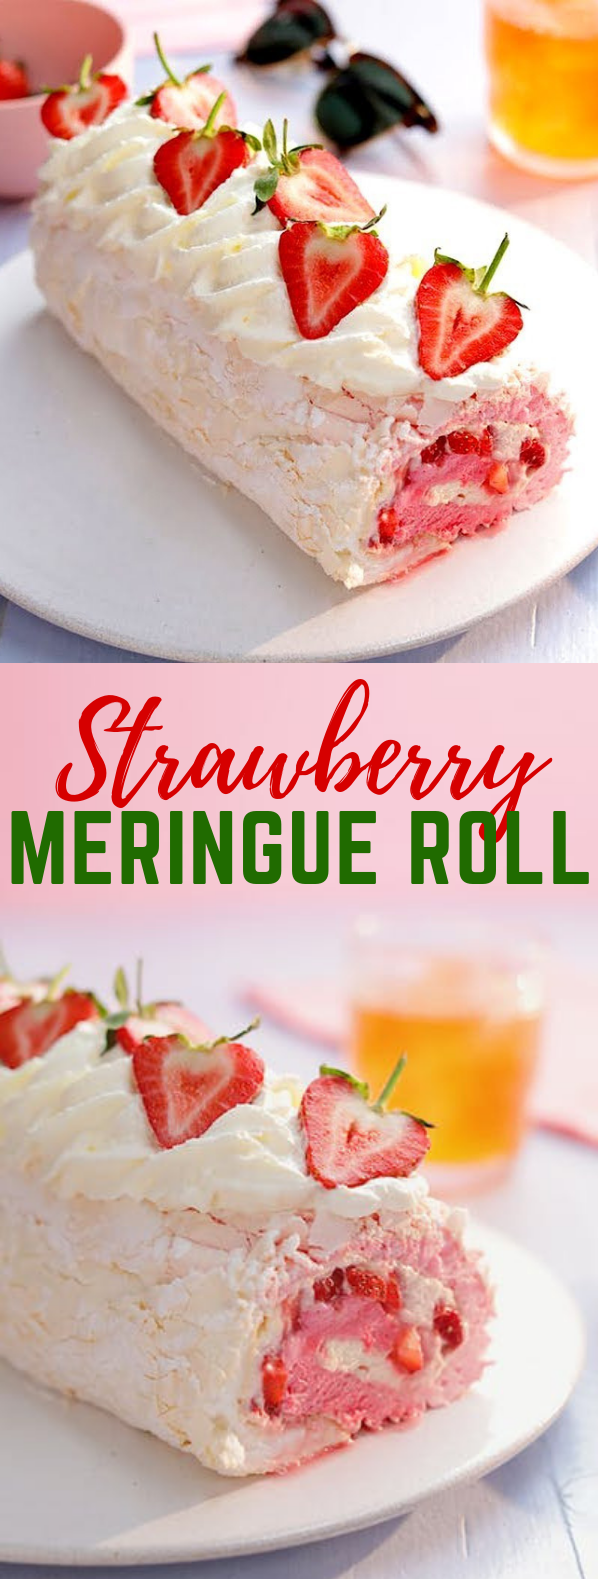 Strawberry Meringue Roll #dessert #sweets